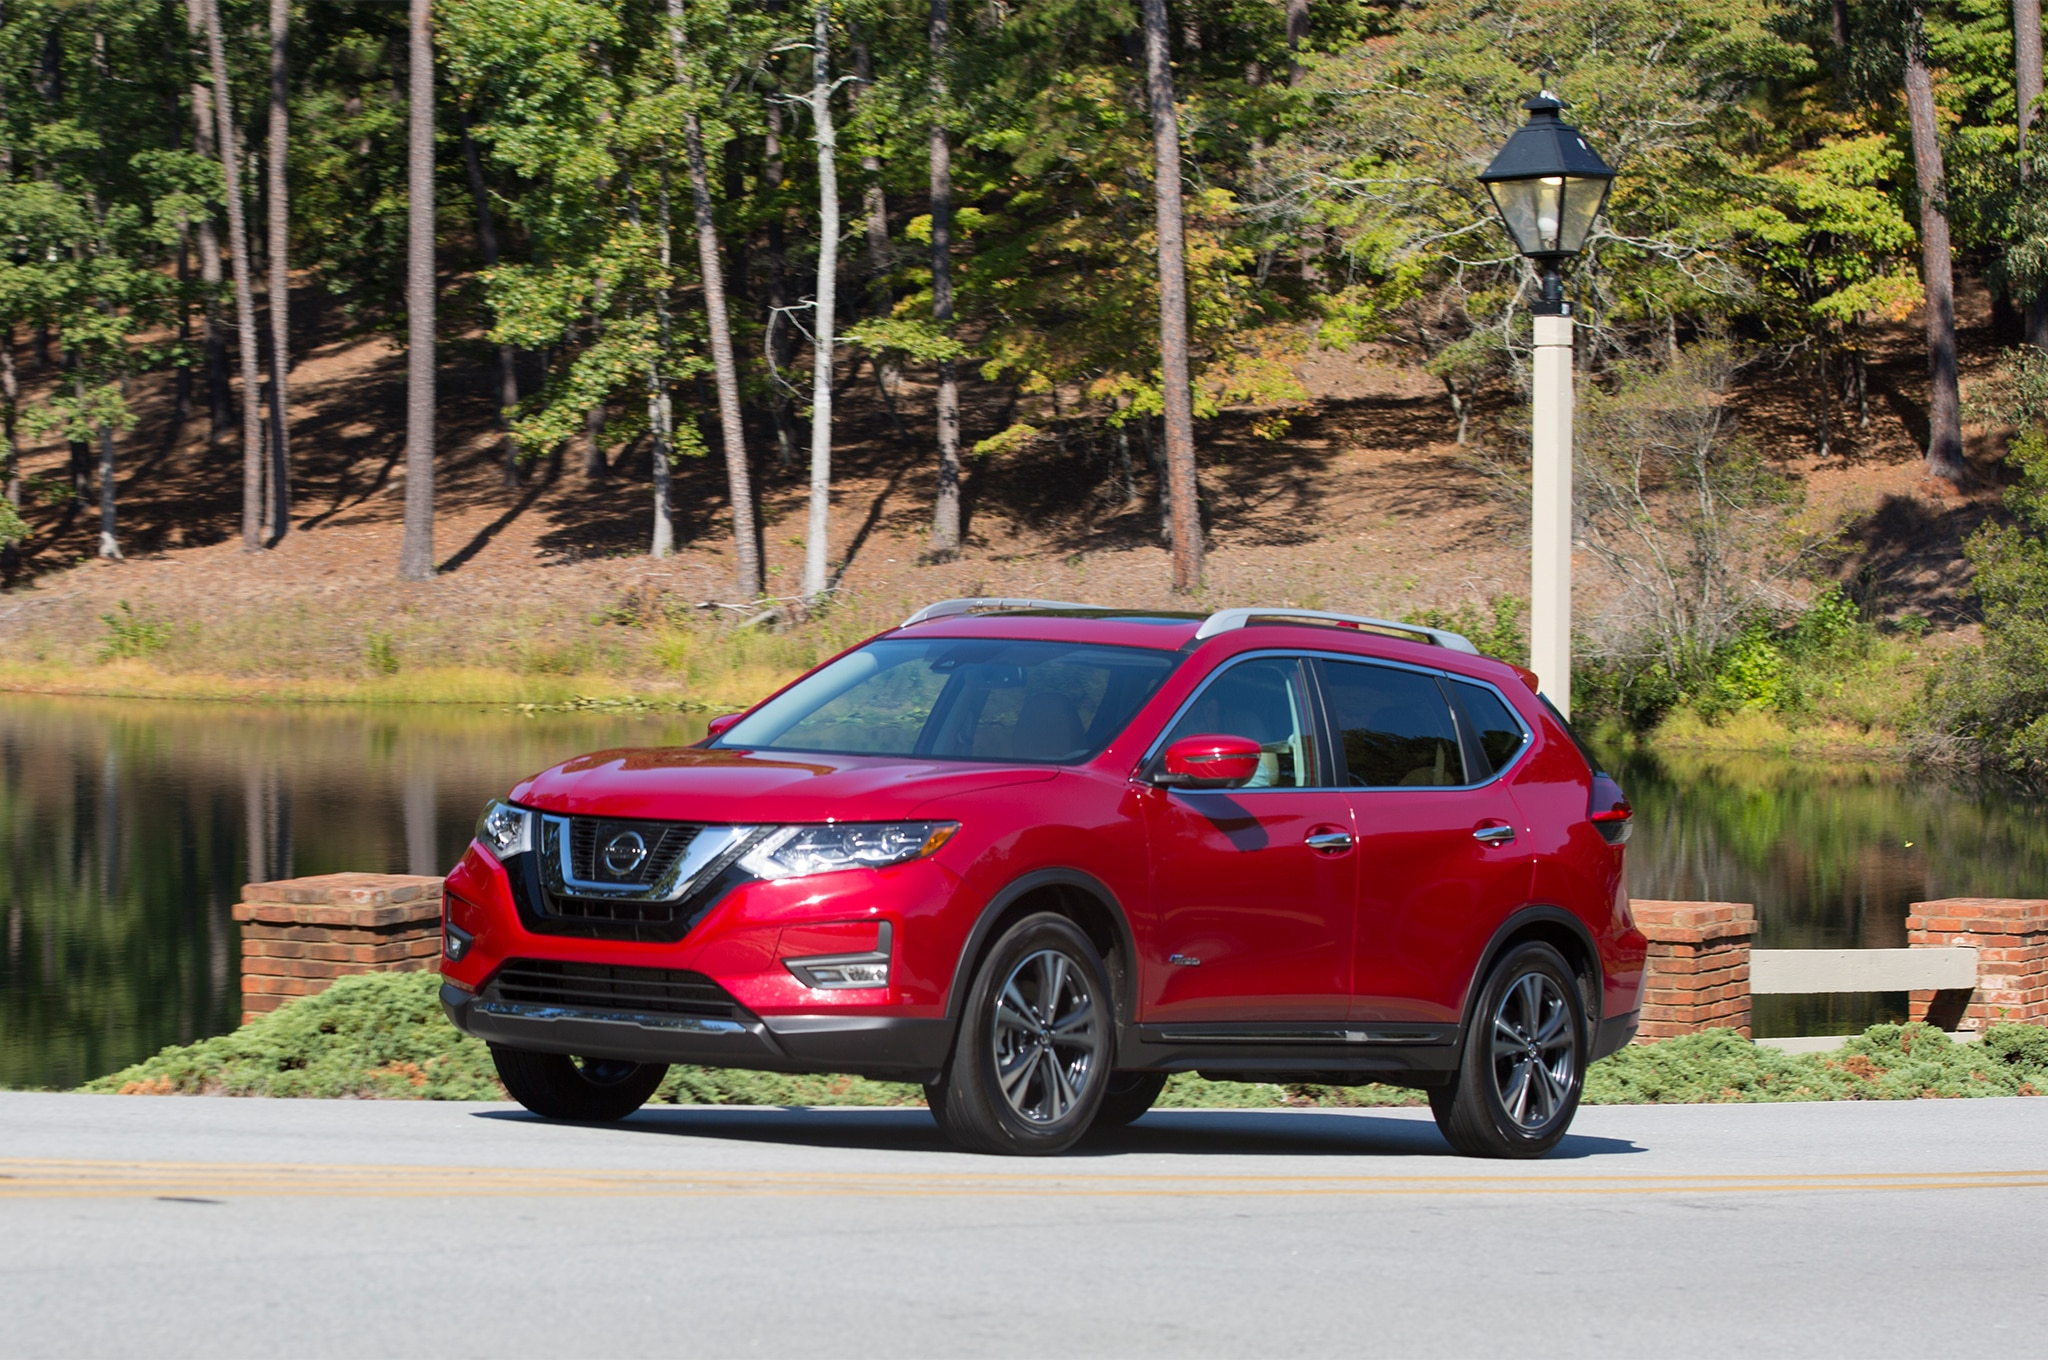 2017 Nissan Rogue Hybrid Front Three Quarter 2 Mayo 2018 Miguel Cortina